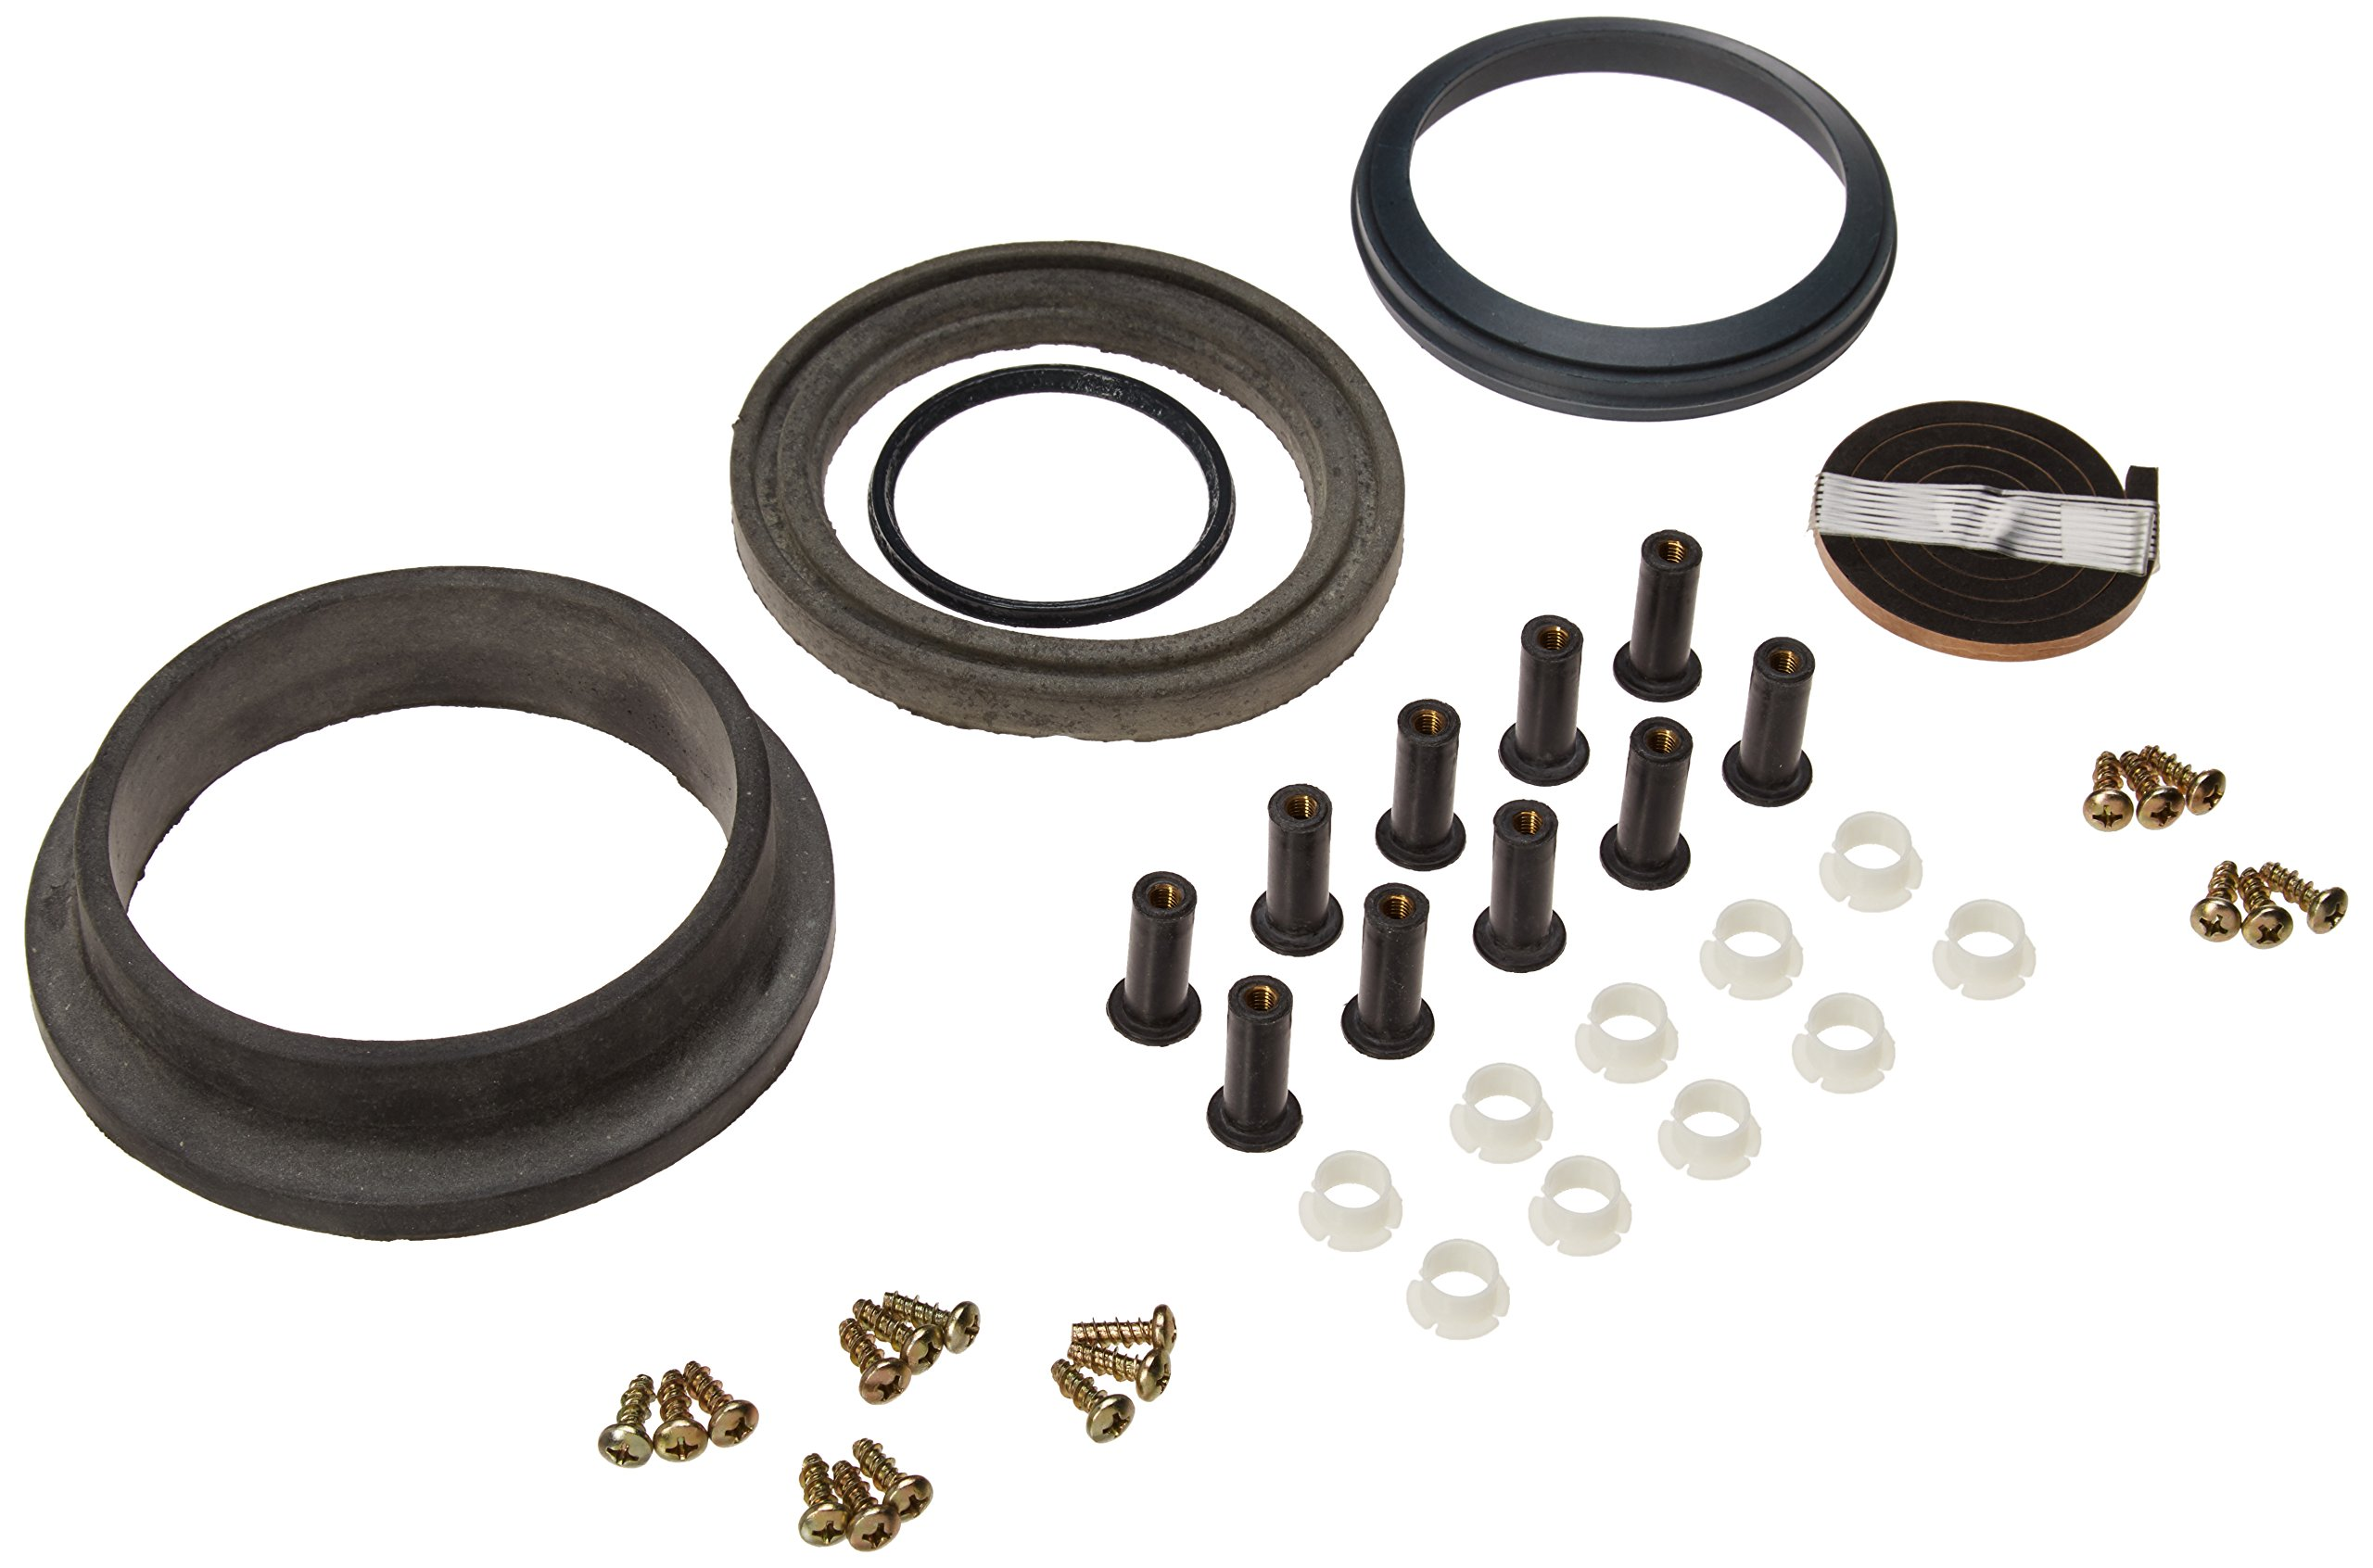 Thetford 28100 Aqua Magic Aurora Toilet Upper Mechanism Seal Replacement Package by Thetford